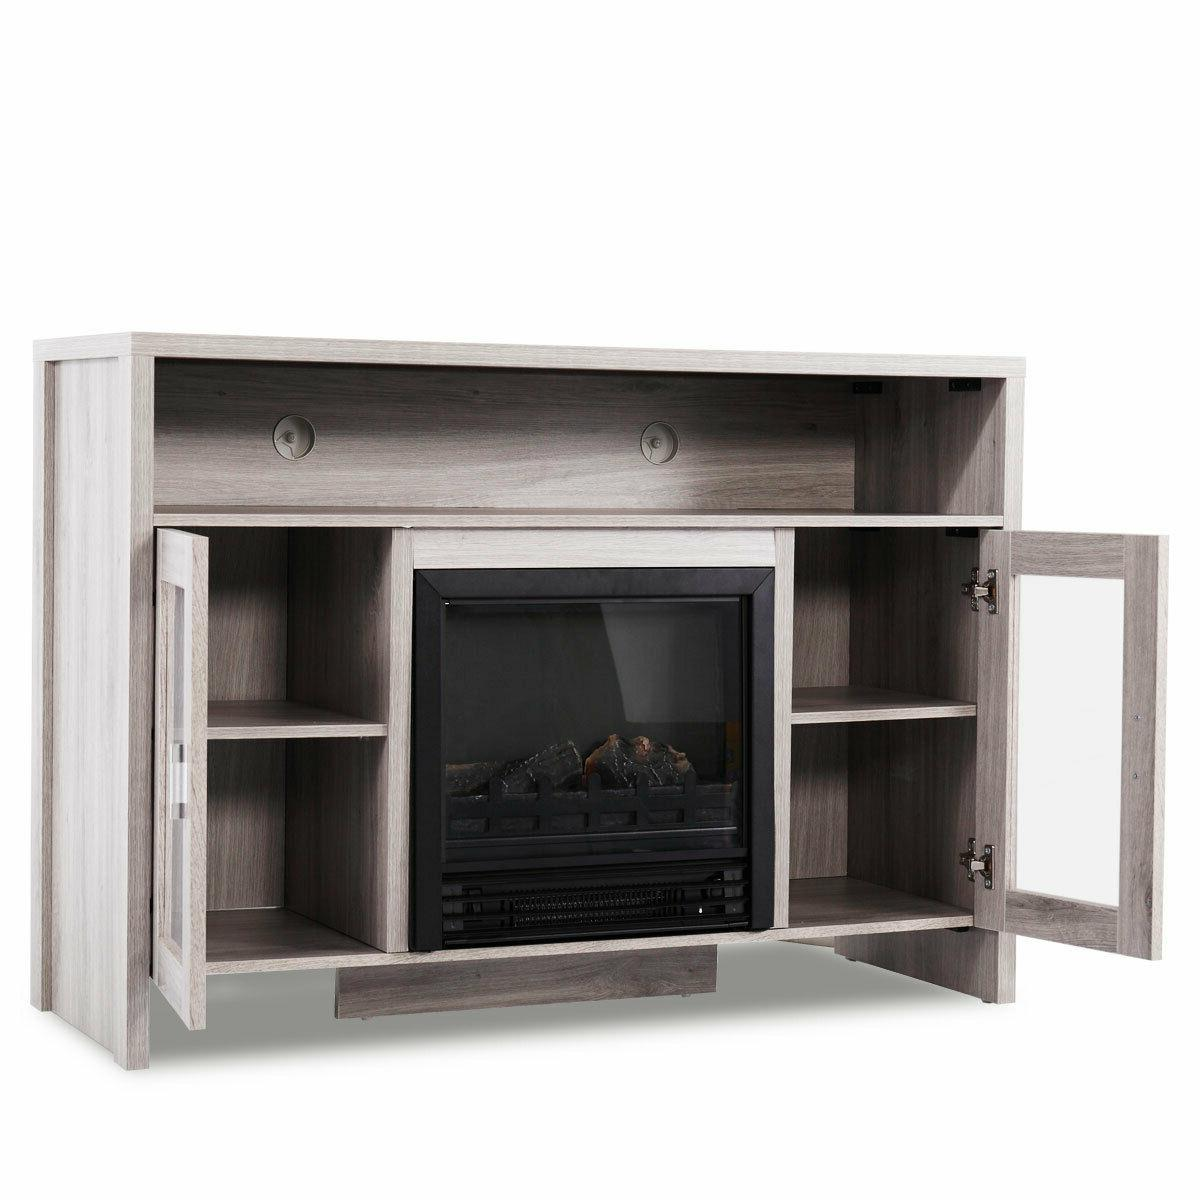 Fireplace TV Storage Heater for to 43""